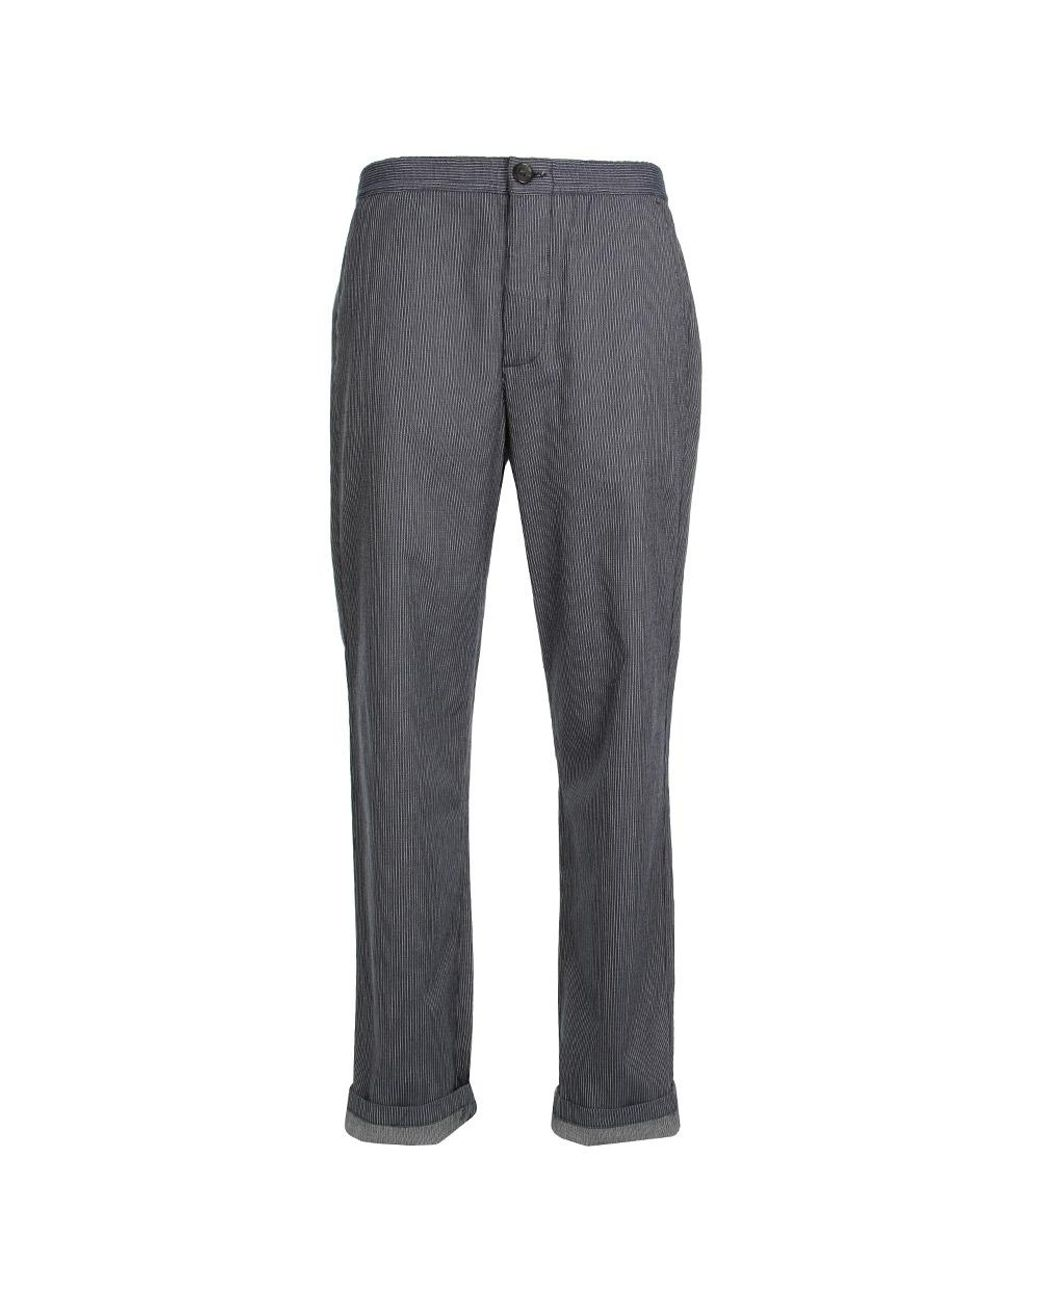 Navy Oliver Spencer Trousers Armitage